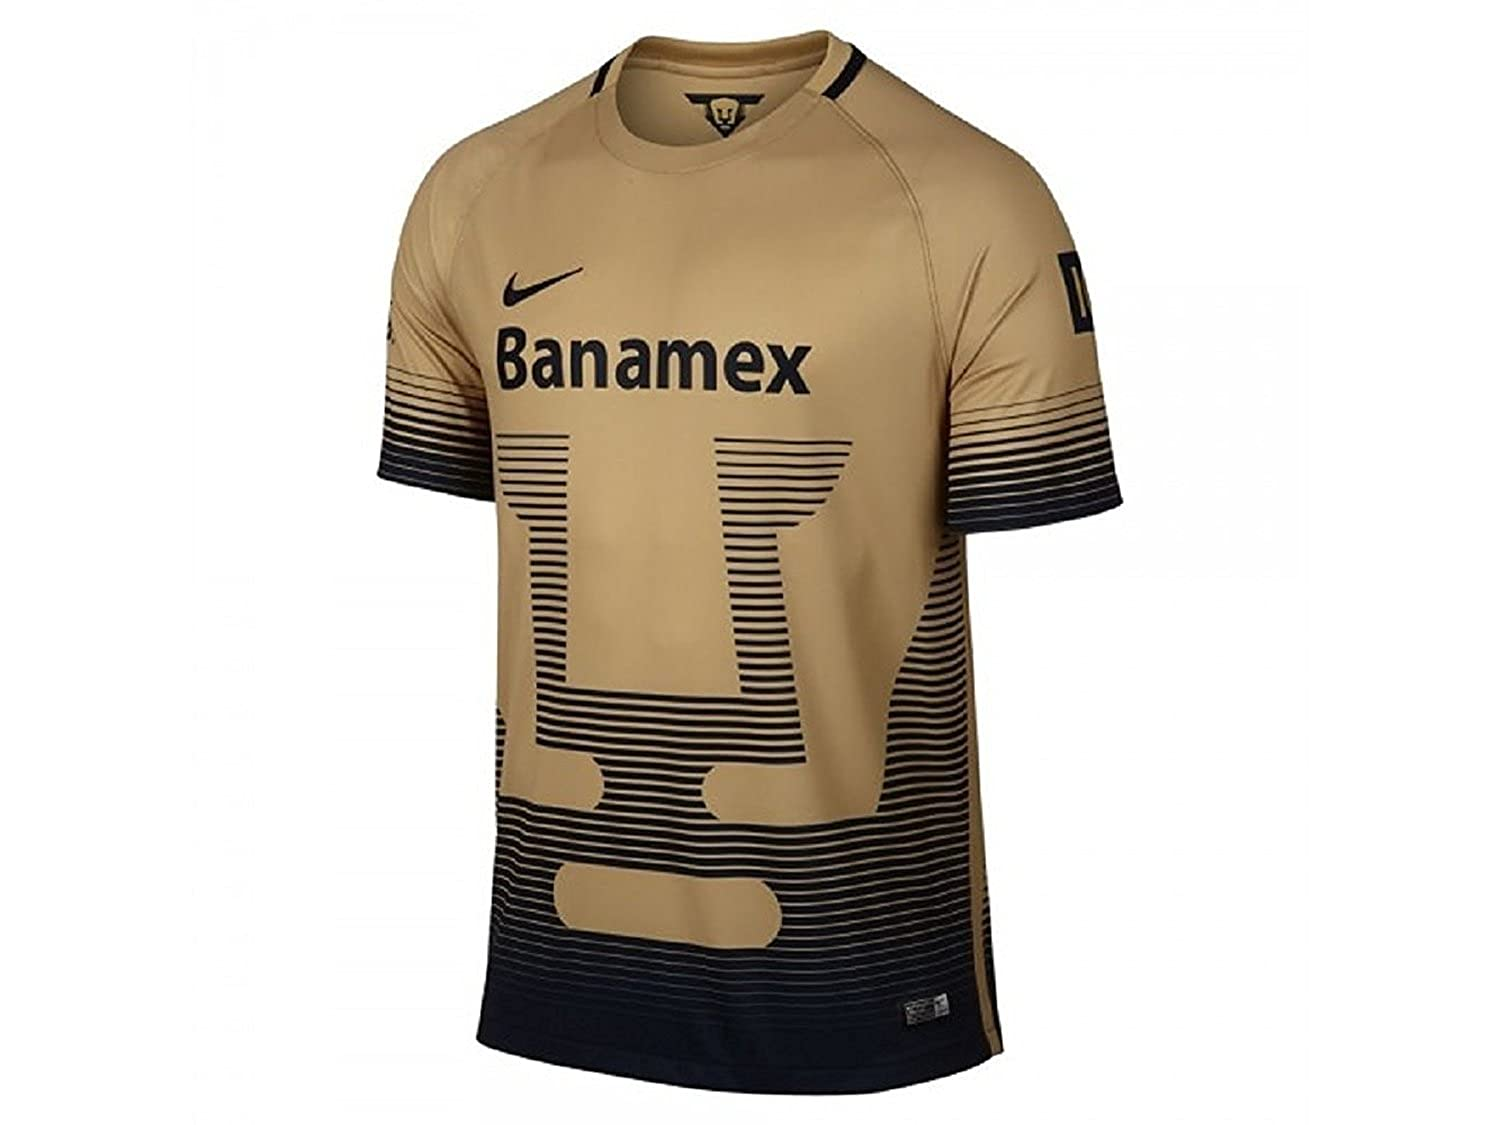 f97b9c19920 Amazon.com   2015-2016 Nike UNAM Pumas Home Replica Soccer Jersey  (Gold Navy) (L)   Sports   Outdoors